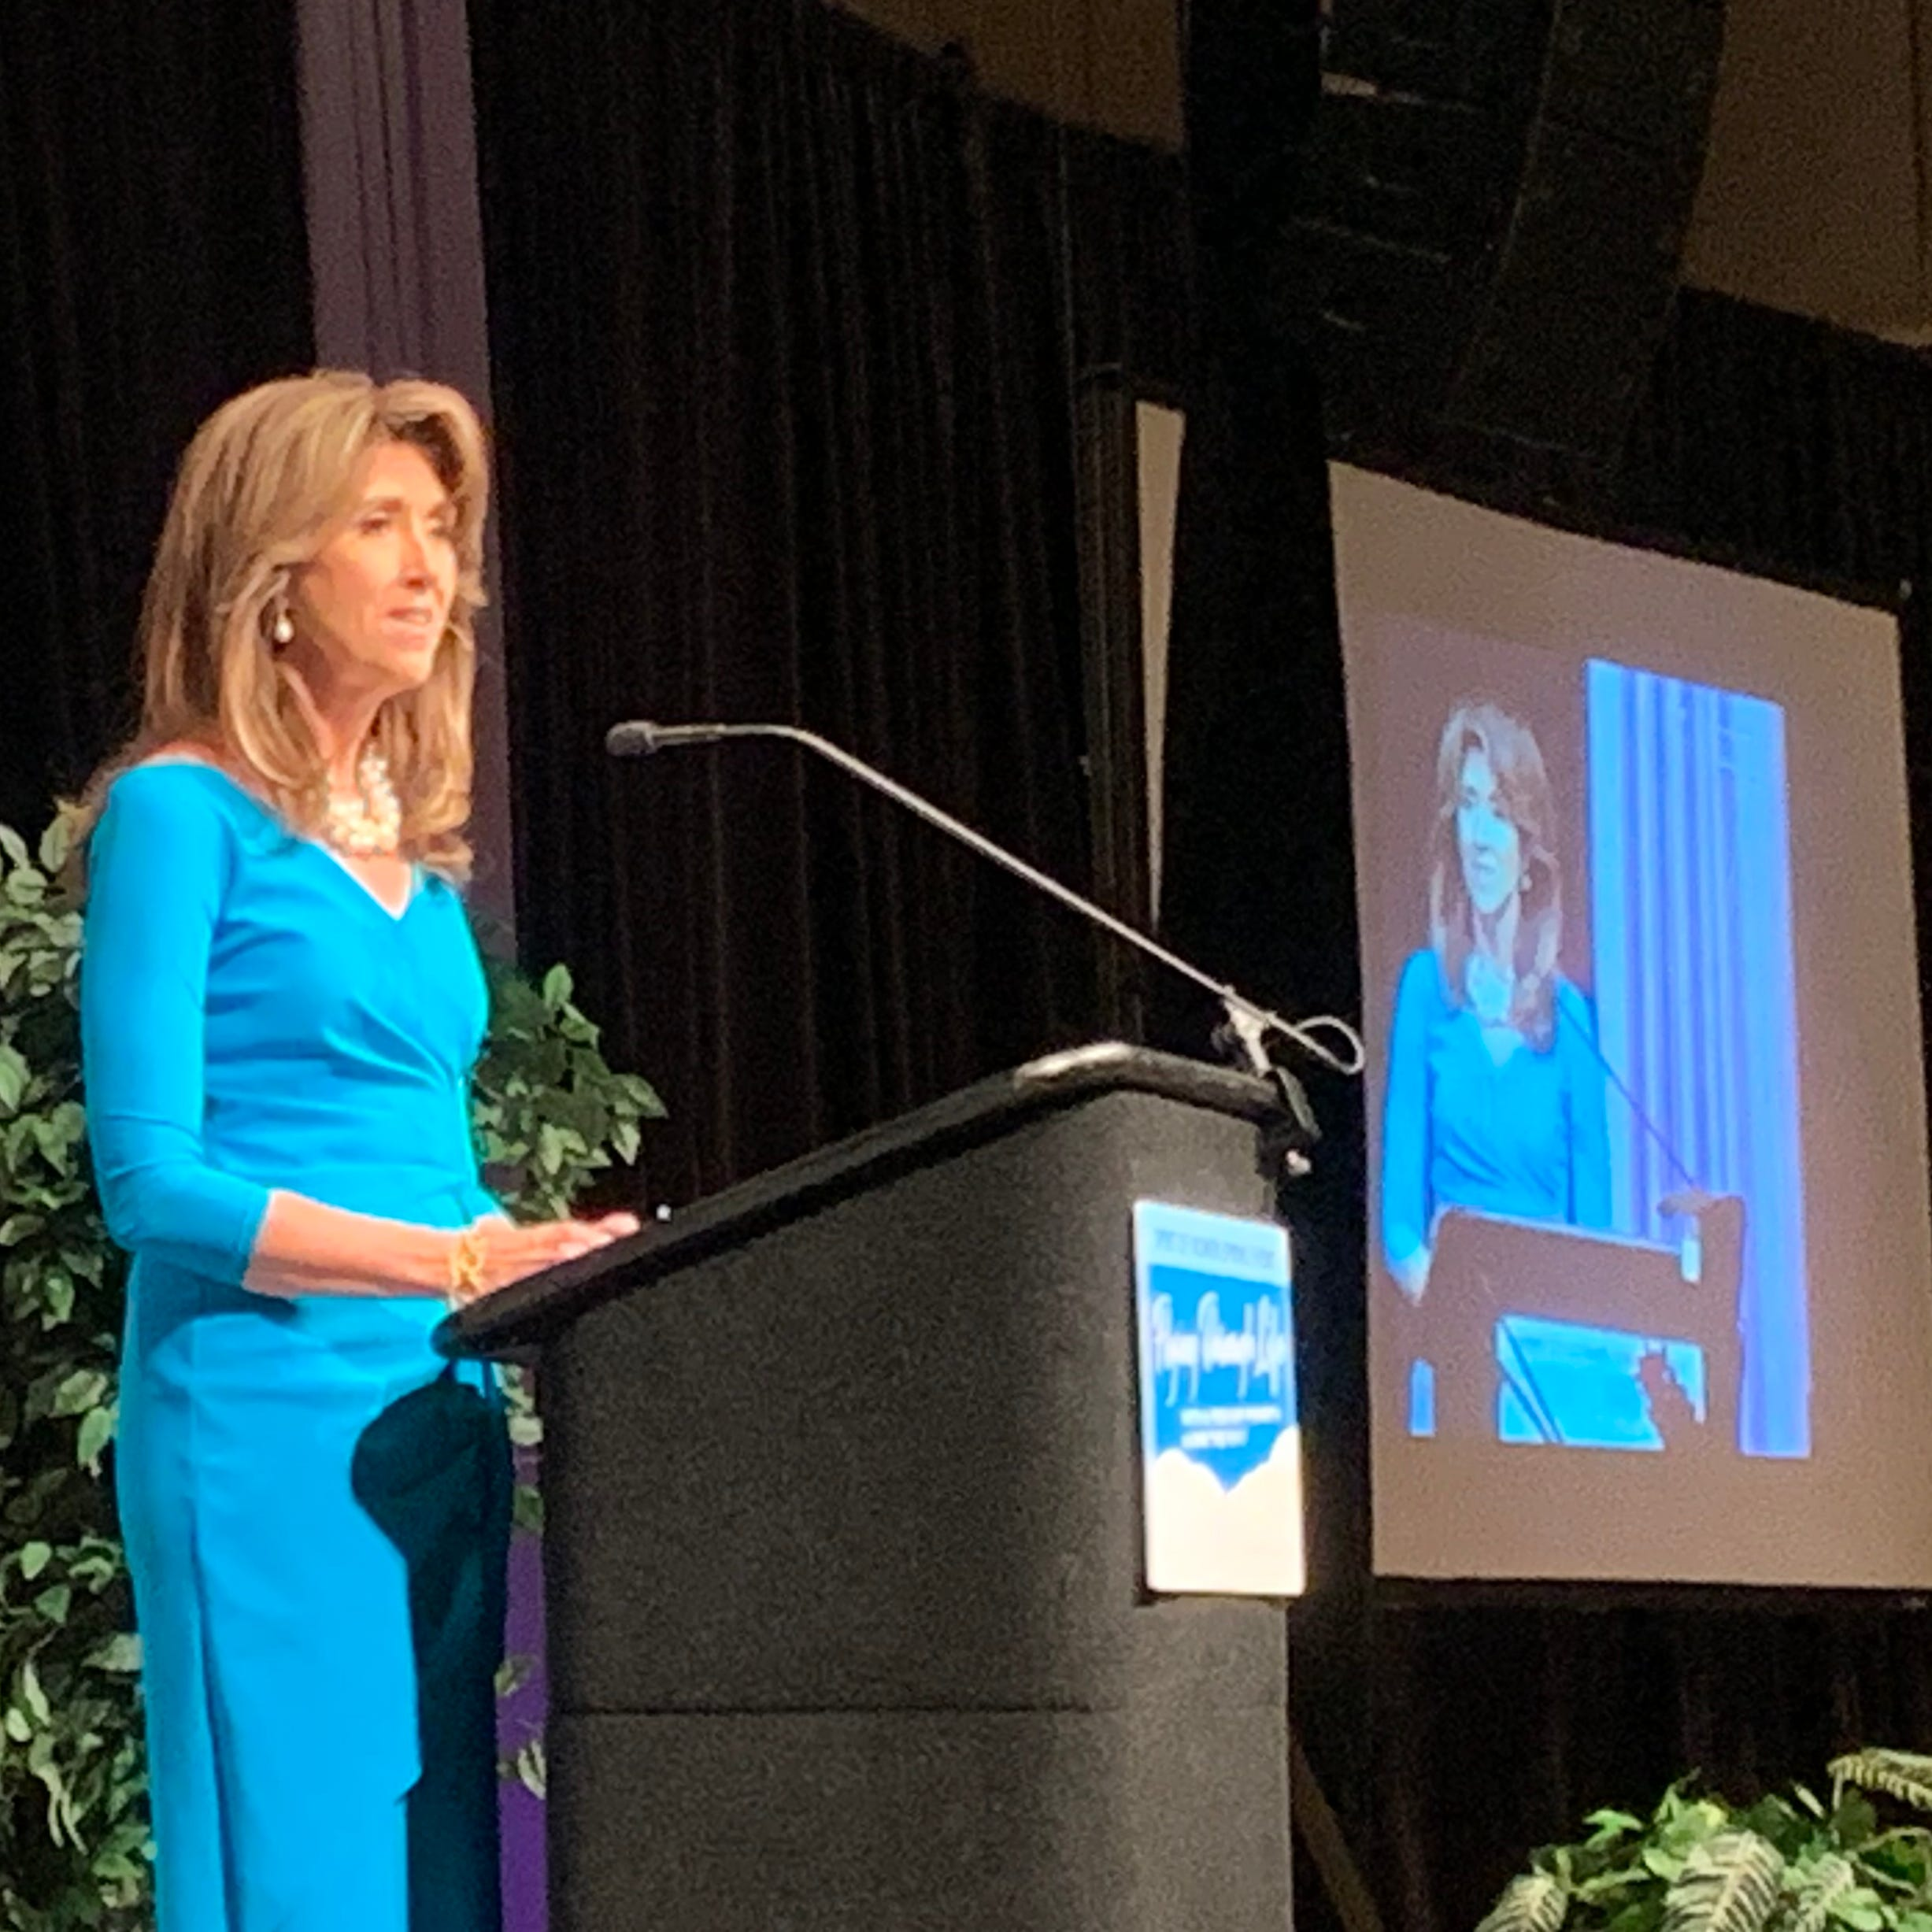 Tammie Jo Shults recalls emergency landing: 'We're not going down. We're going to Philly.'